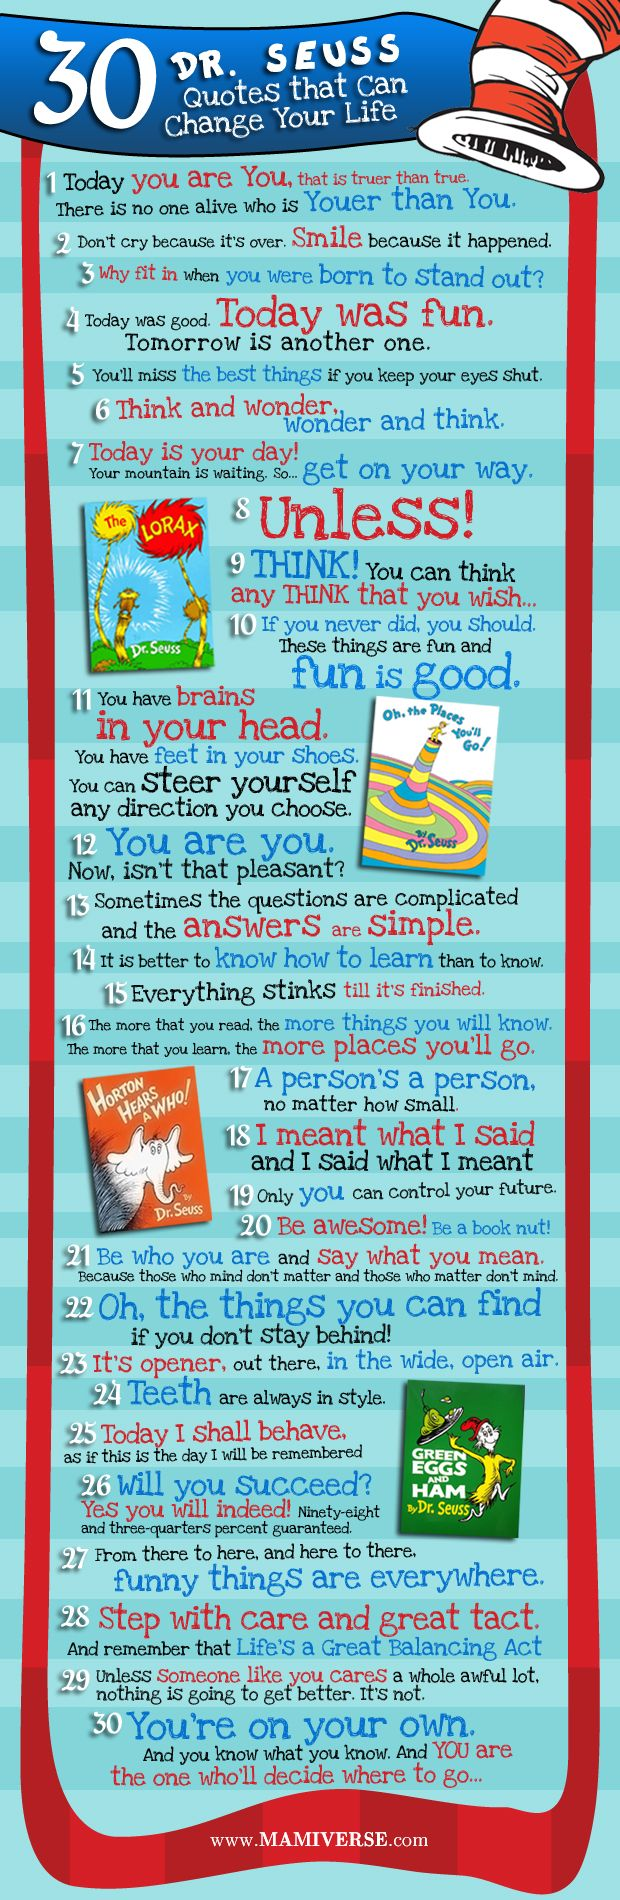 30 Dr. Seuss Quotes